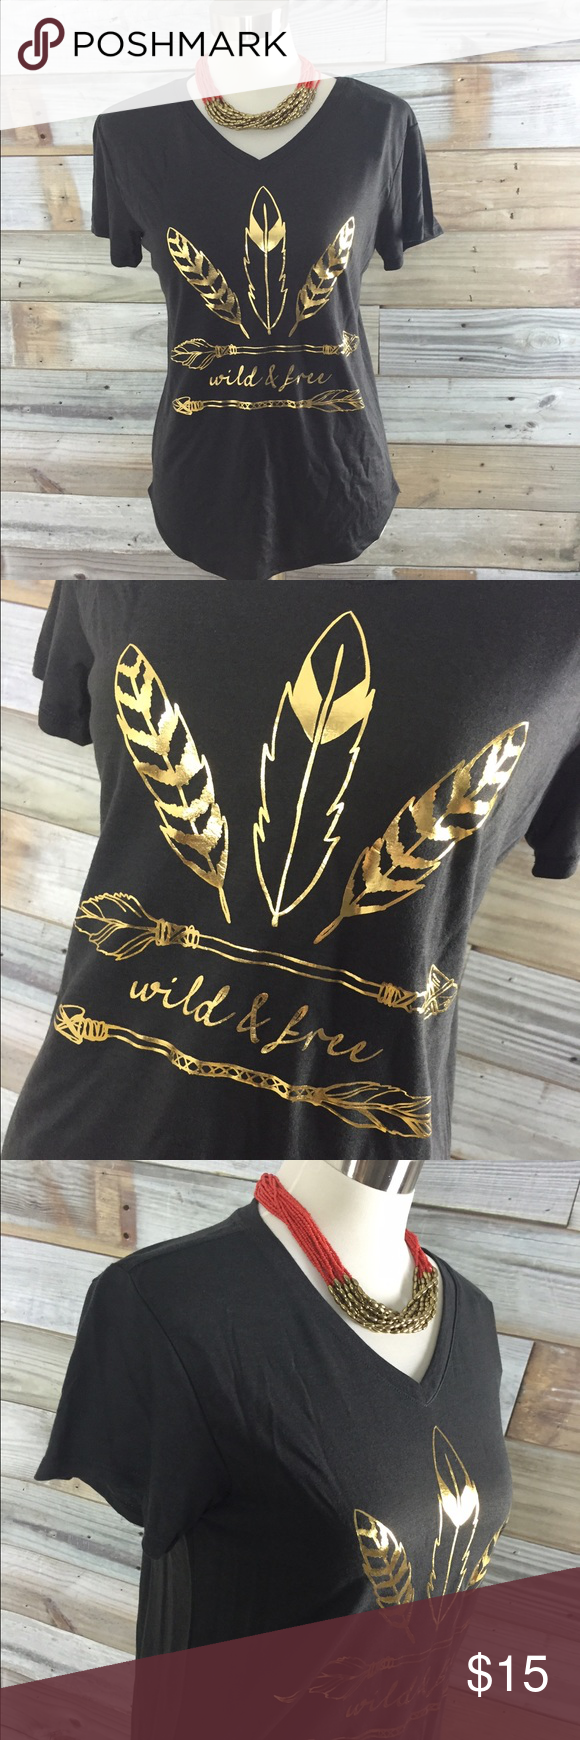 """{Boutique} Supersoft Gold Foil Tee Brand new with tags; Boutique tee--this might be THE softest t-shirt I've ever touched! 50% Poly/ 50% Rayon...lots of stretch and the cutest design in gold foil on the front ....feather design with """"Wild & Free""""...great for those days you just HAVE to be comfy--throw on a statement necklace and some boyfriend jeans and you're set! Boutique; Size Small Boutique Tops Tees - Short Sleeve"""